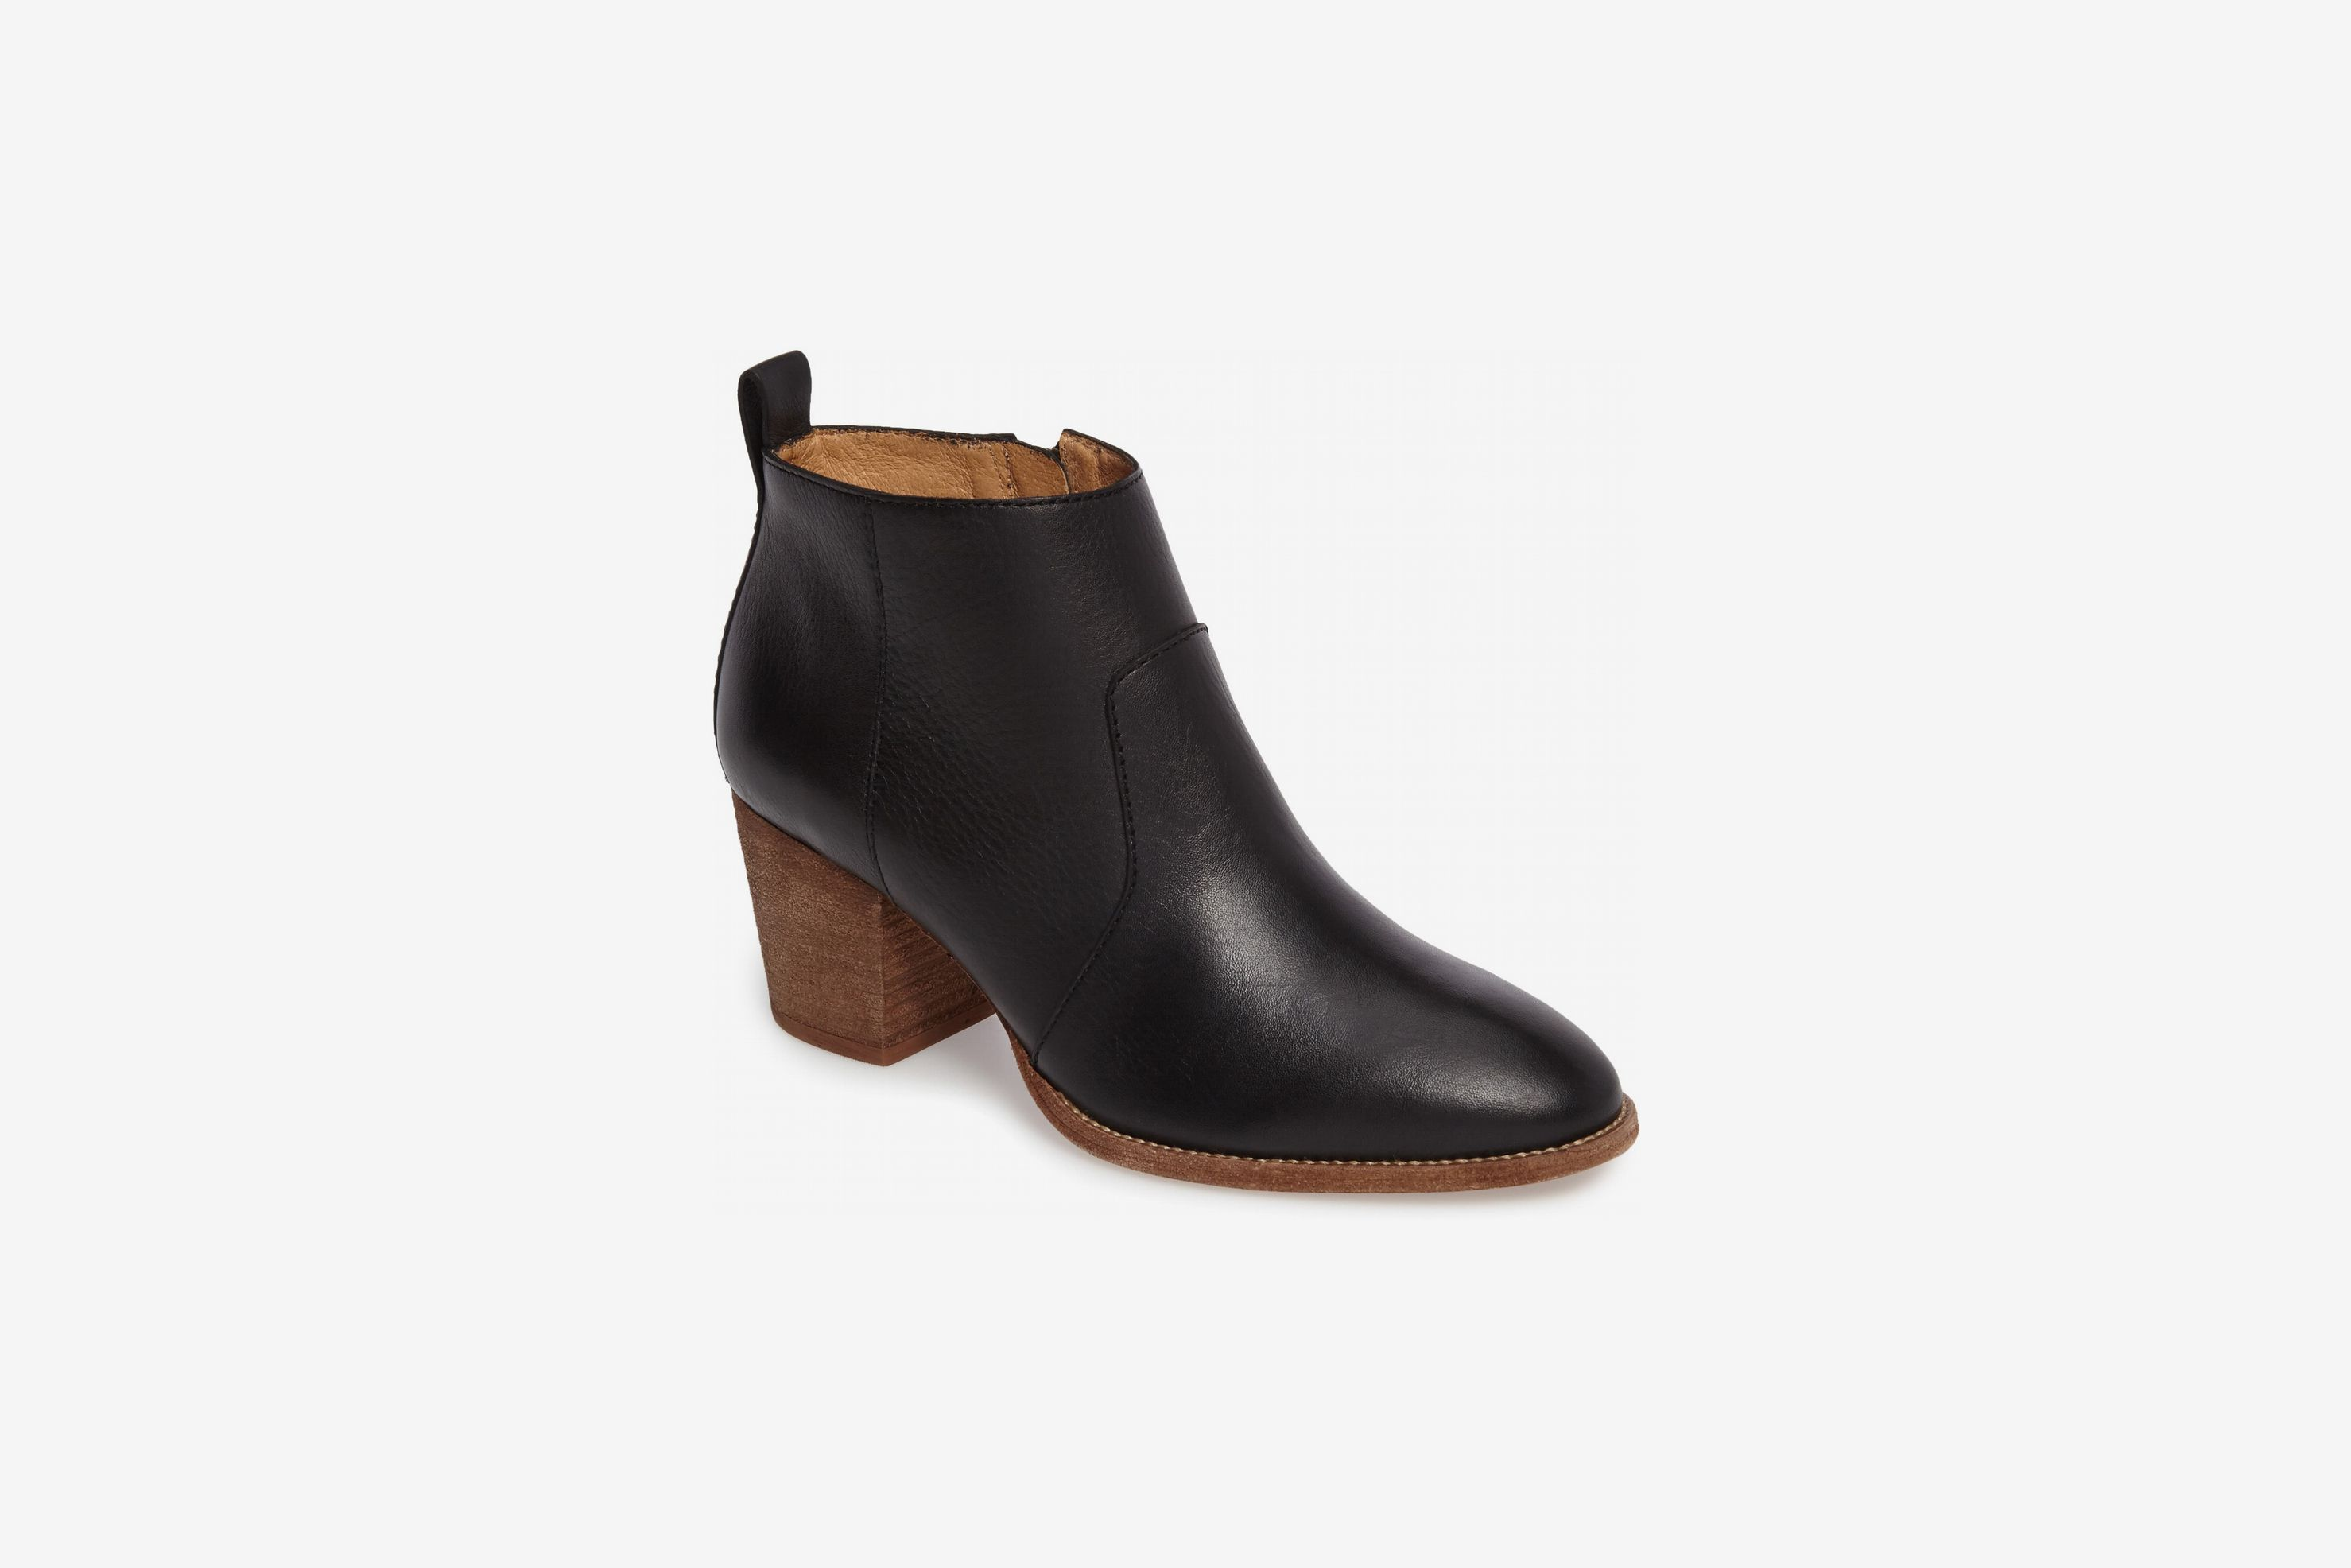 Madewell The Brenner Boot